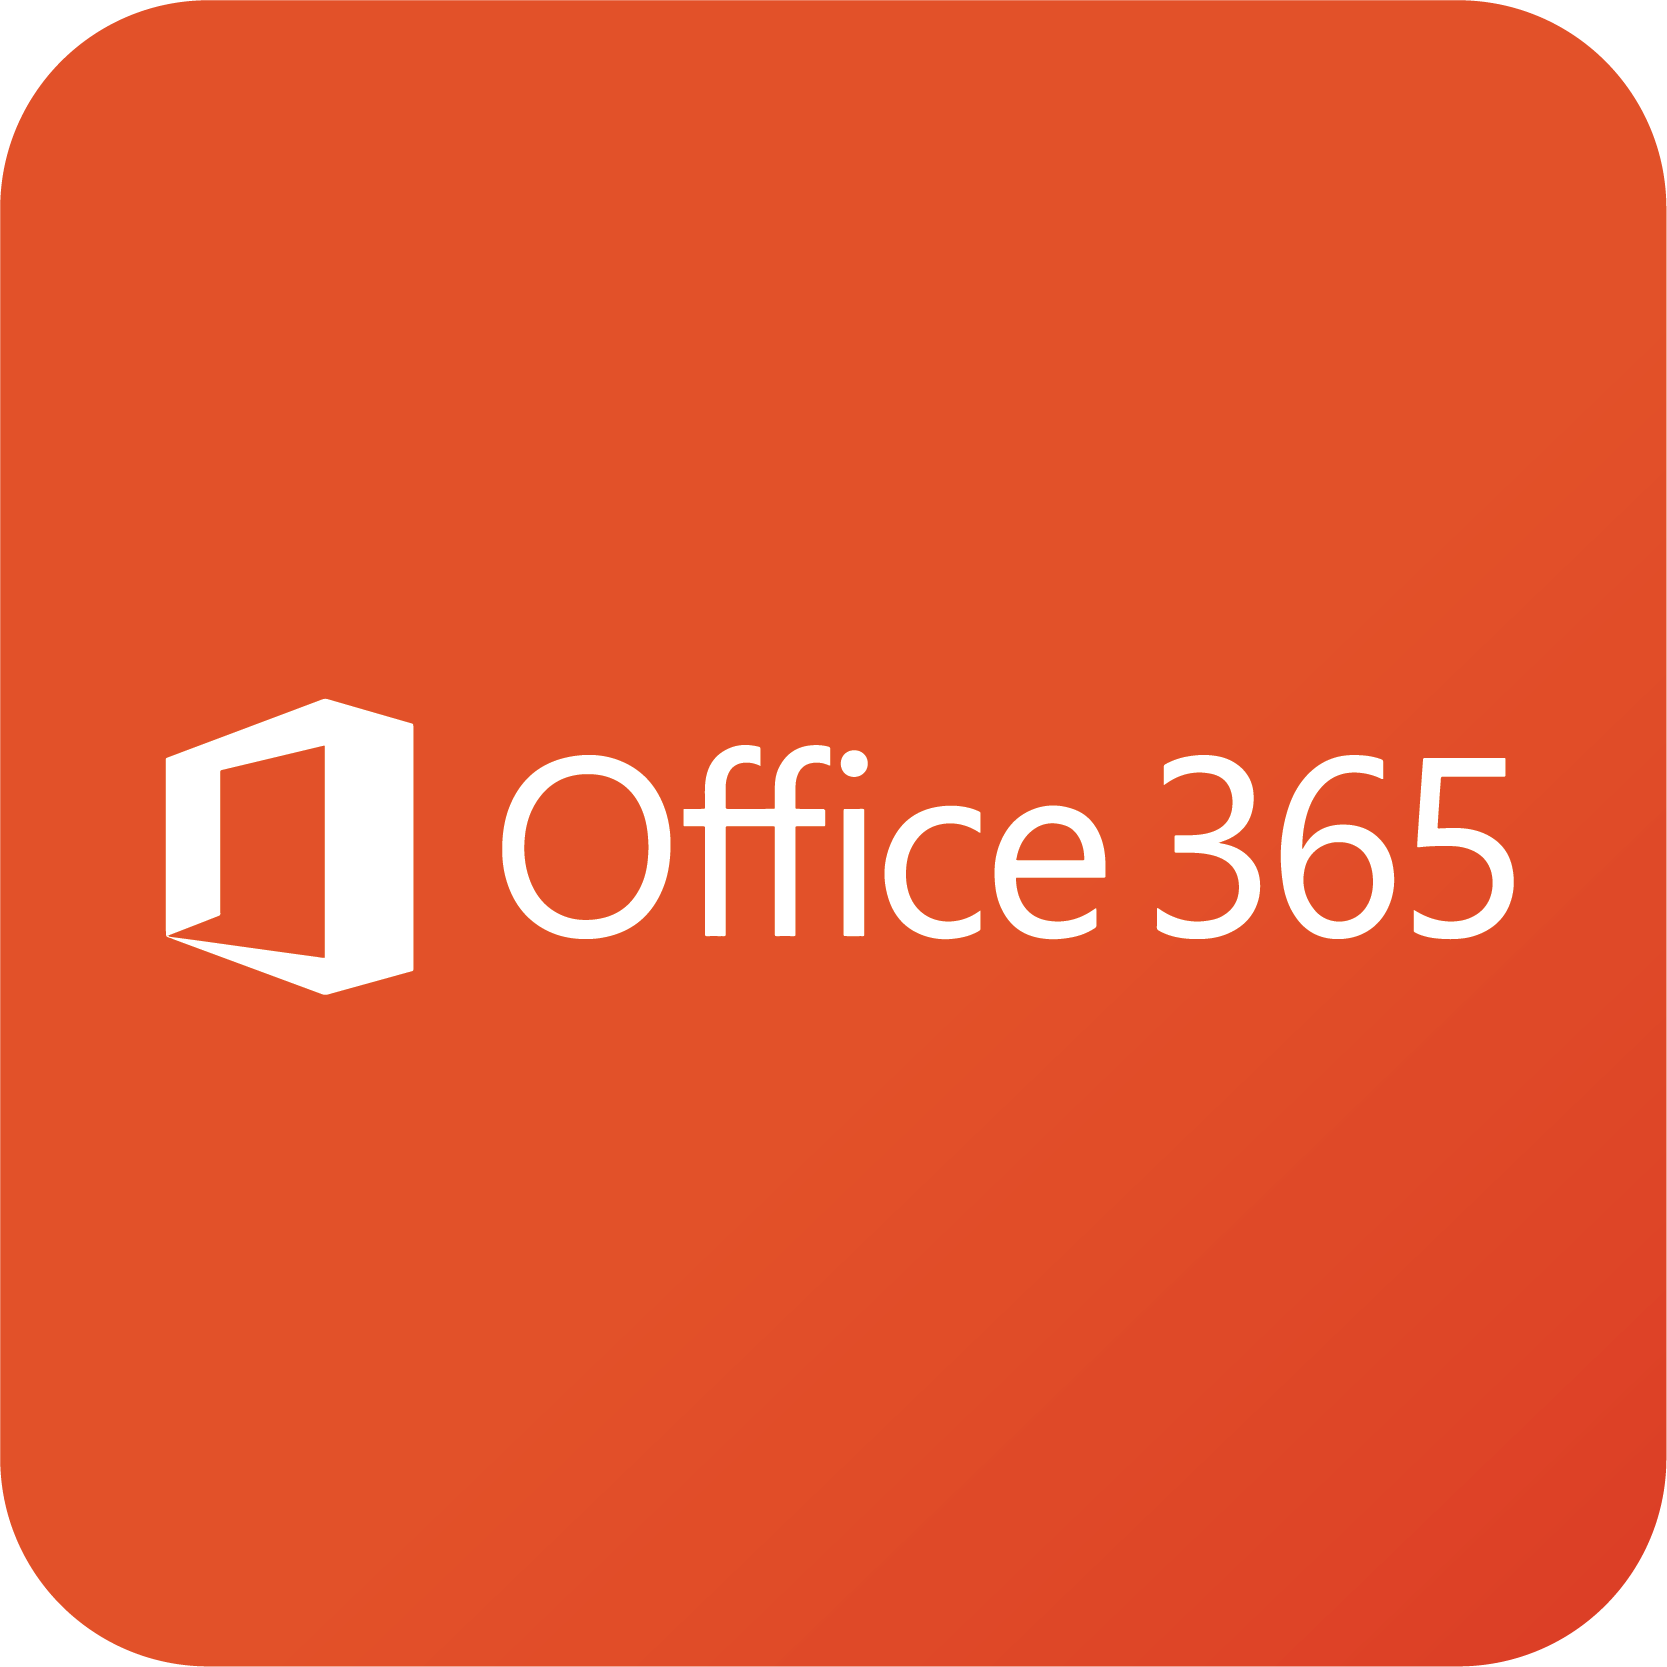 Office 365_icon-01.png